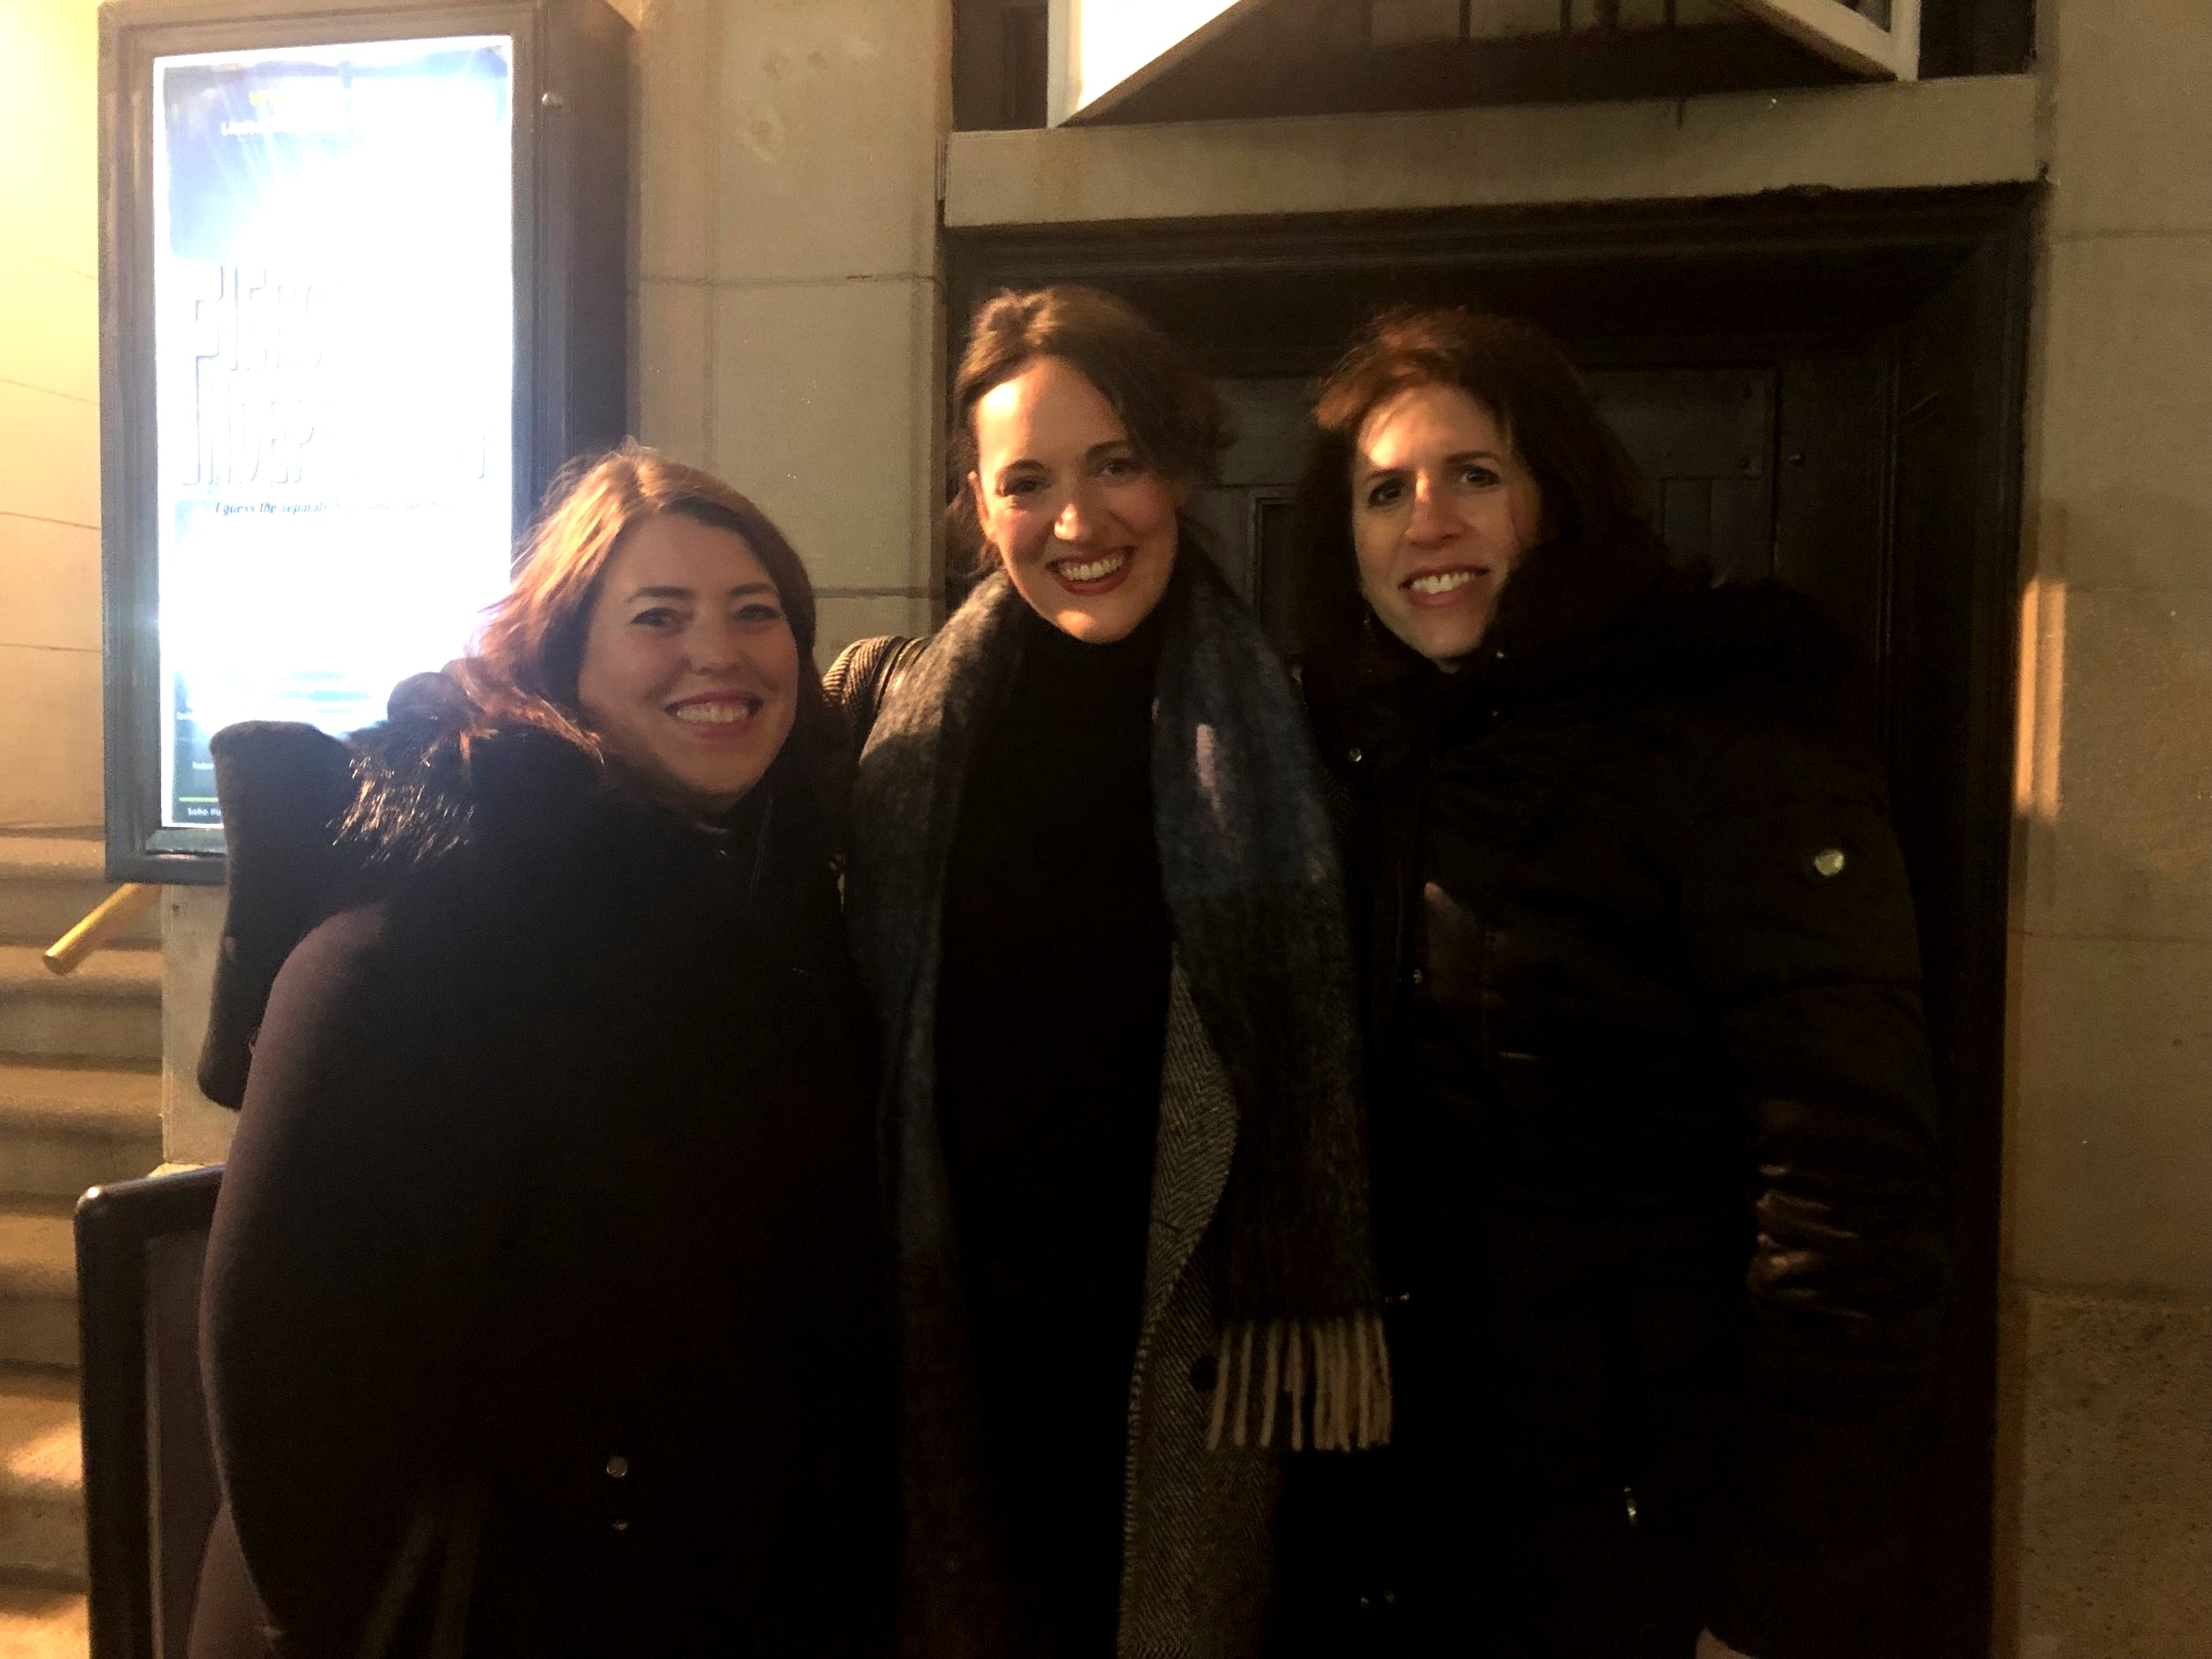 Meeting+Phoebe+Waller-Bridge.jpg